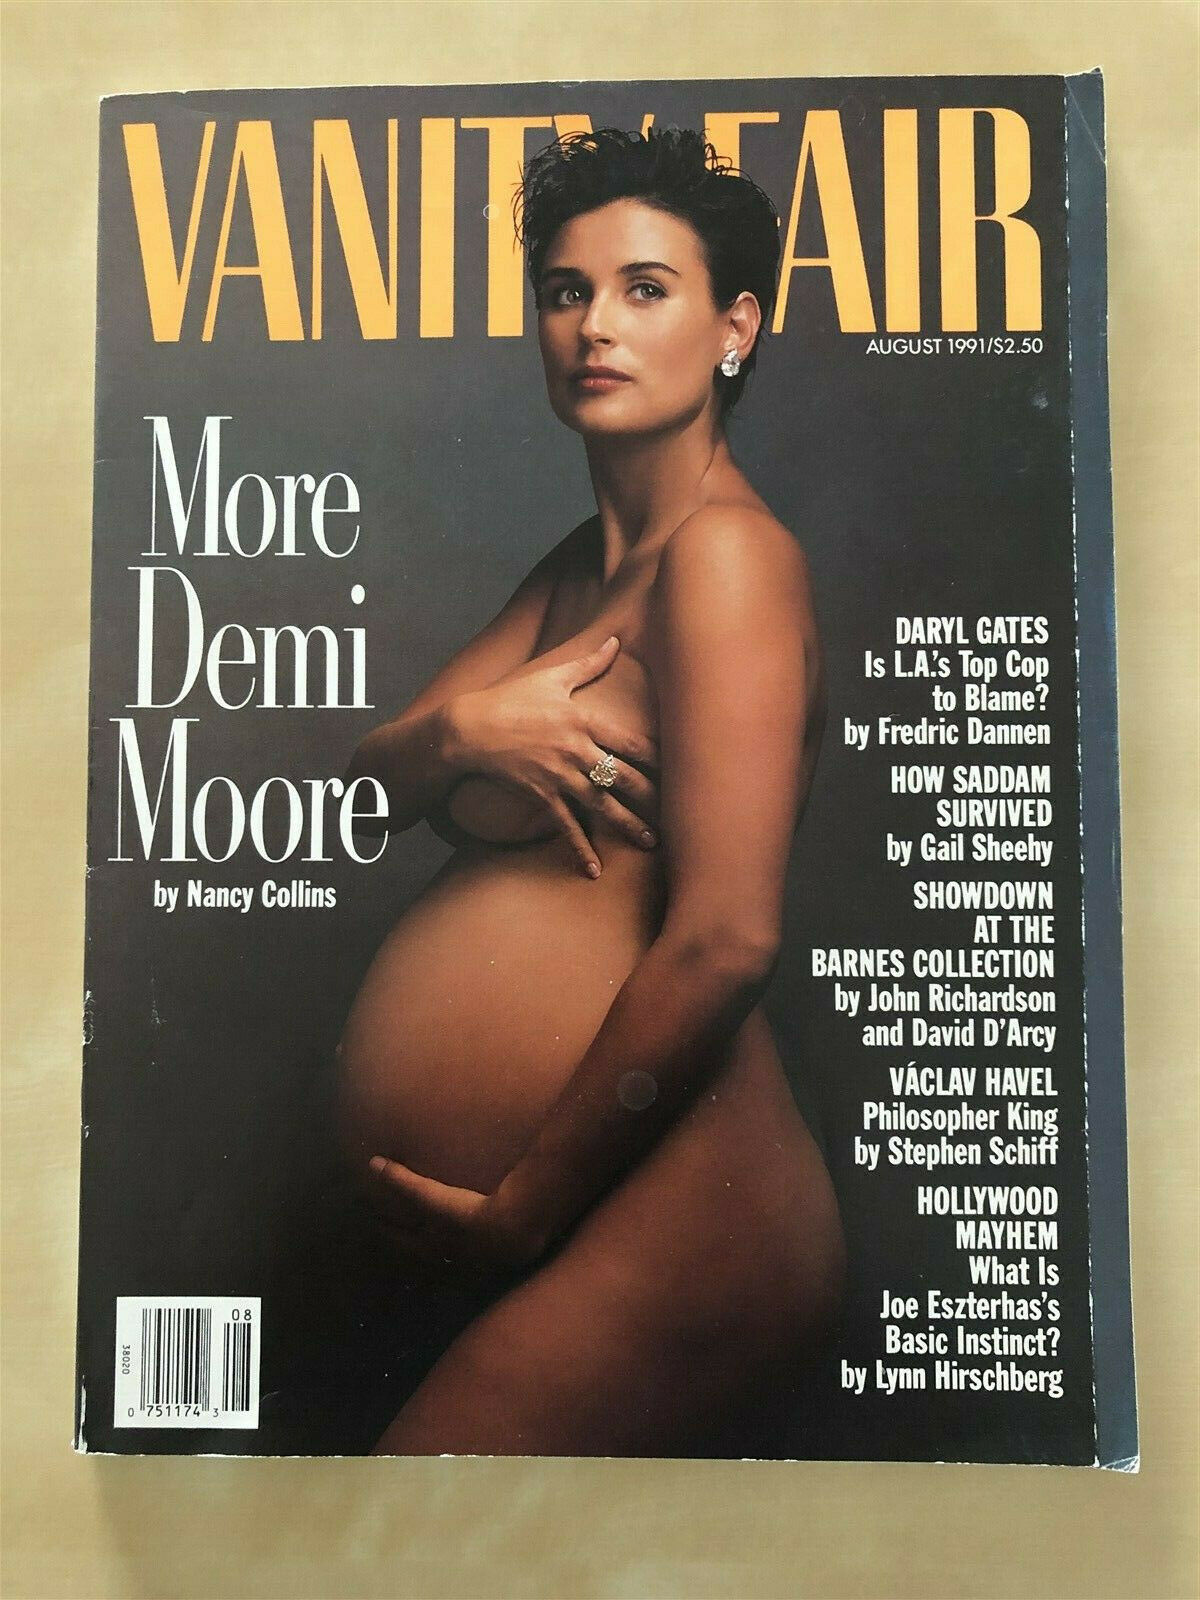 7 18 20 Things You Might Not Have Realised About Demi Moore